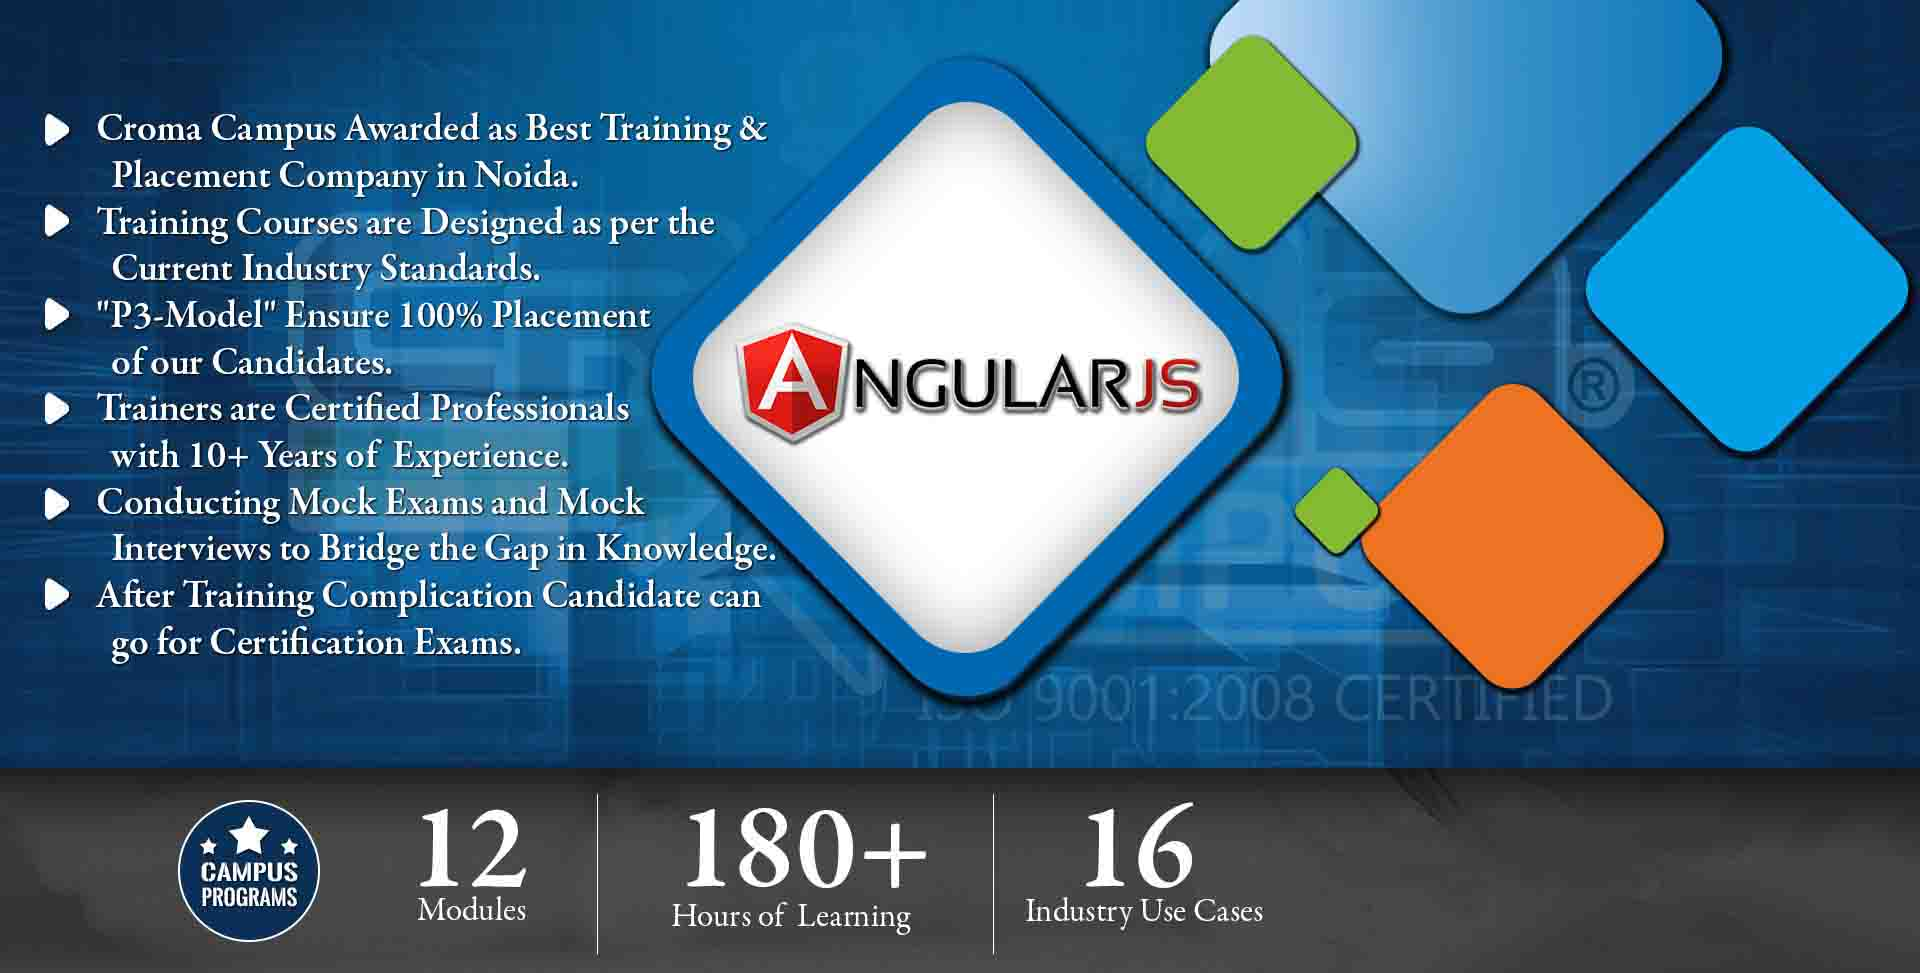 AngularJS Training in Noida- Croma Campus